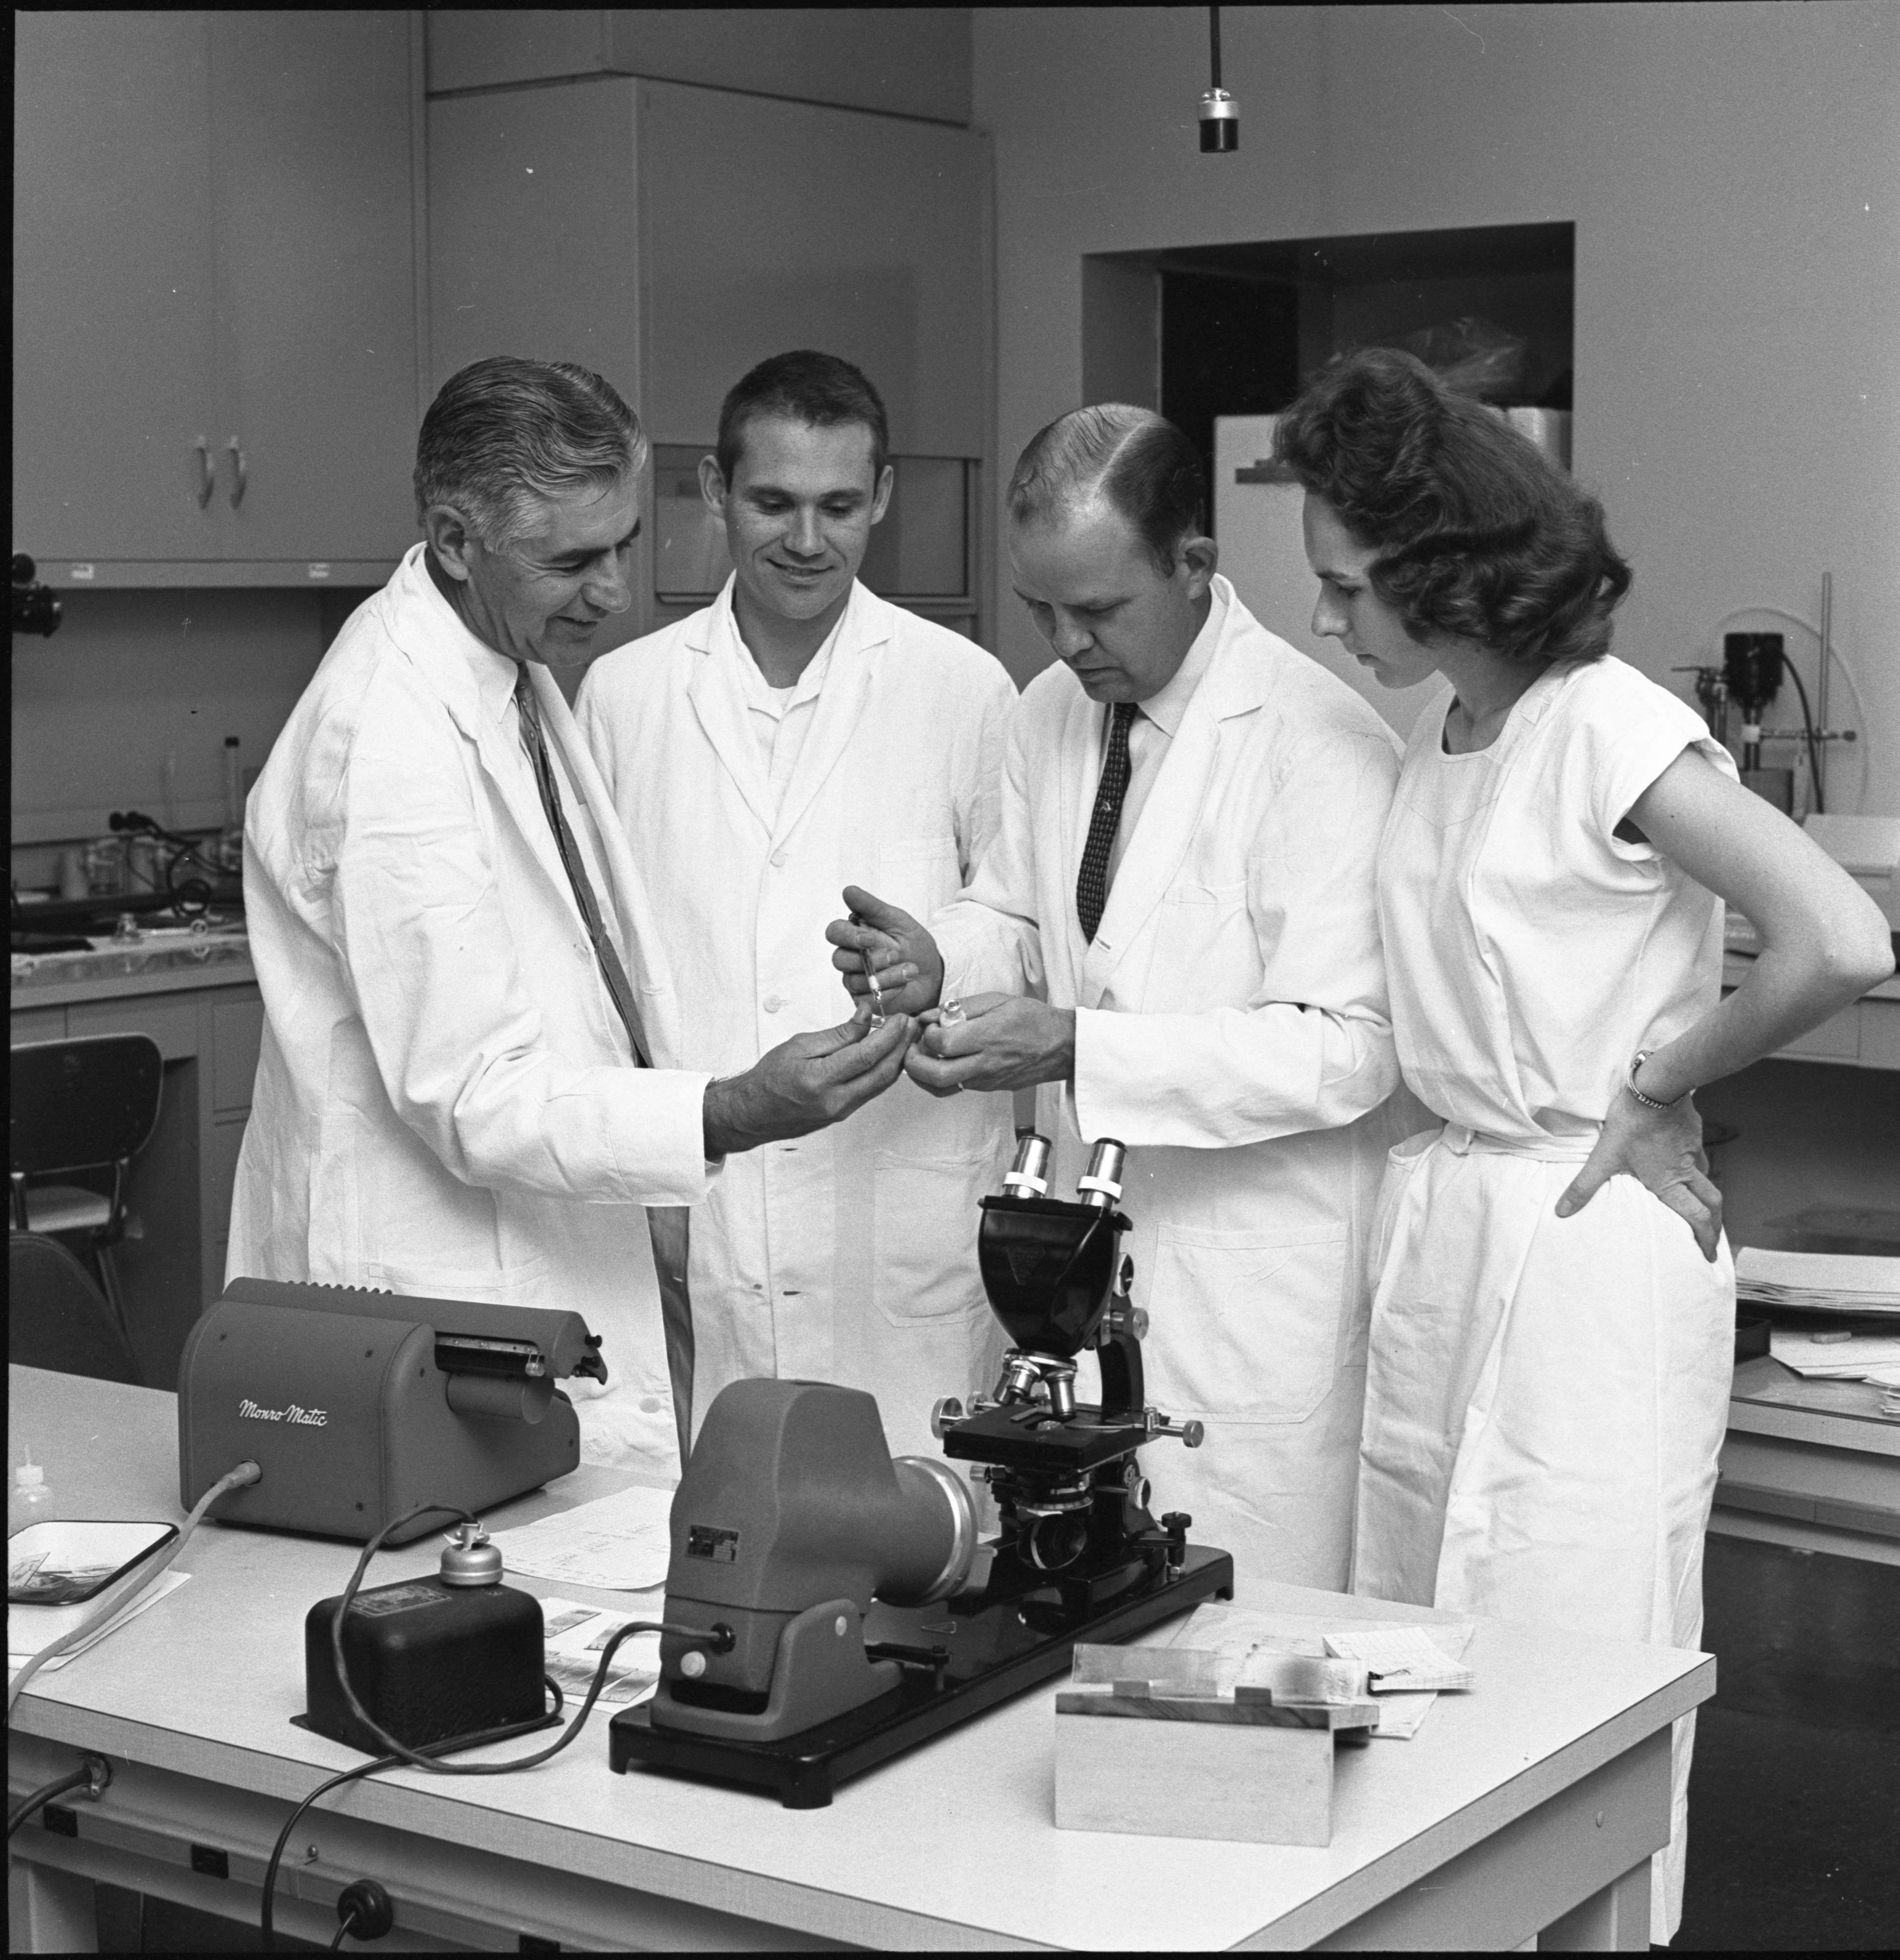 Parke Davis Scientists Who Developed A New Anti-Malaria Drug, November 1962 image